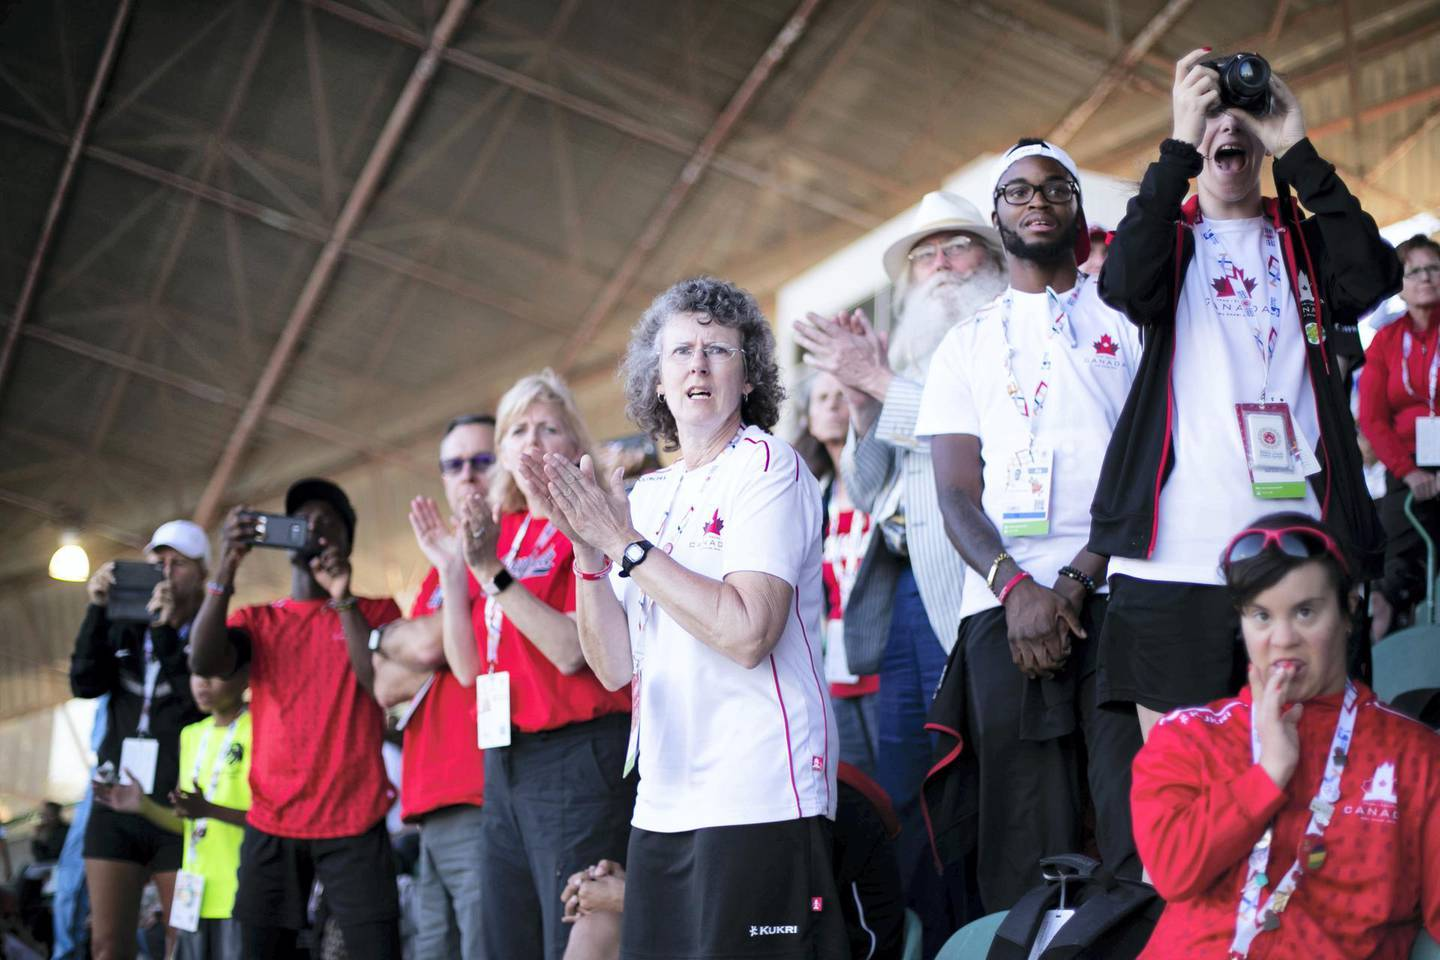 DUBAI, UNITED ARAB EMIRATES - March 19 2019.Audience members cheer on the athletes at Special Olympics World Games athletics 100M race in Dubai Police Academy Stadium. (Photo by Reem Mohammed/The National)Reporter: Section:  NA